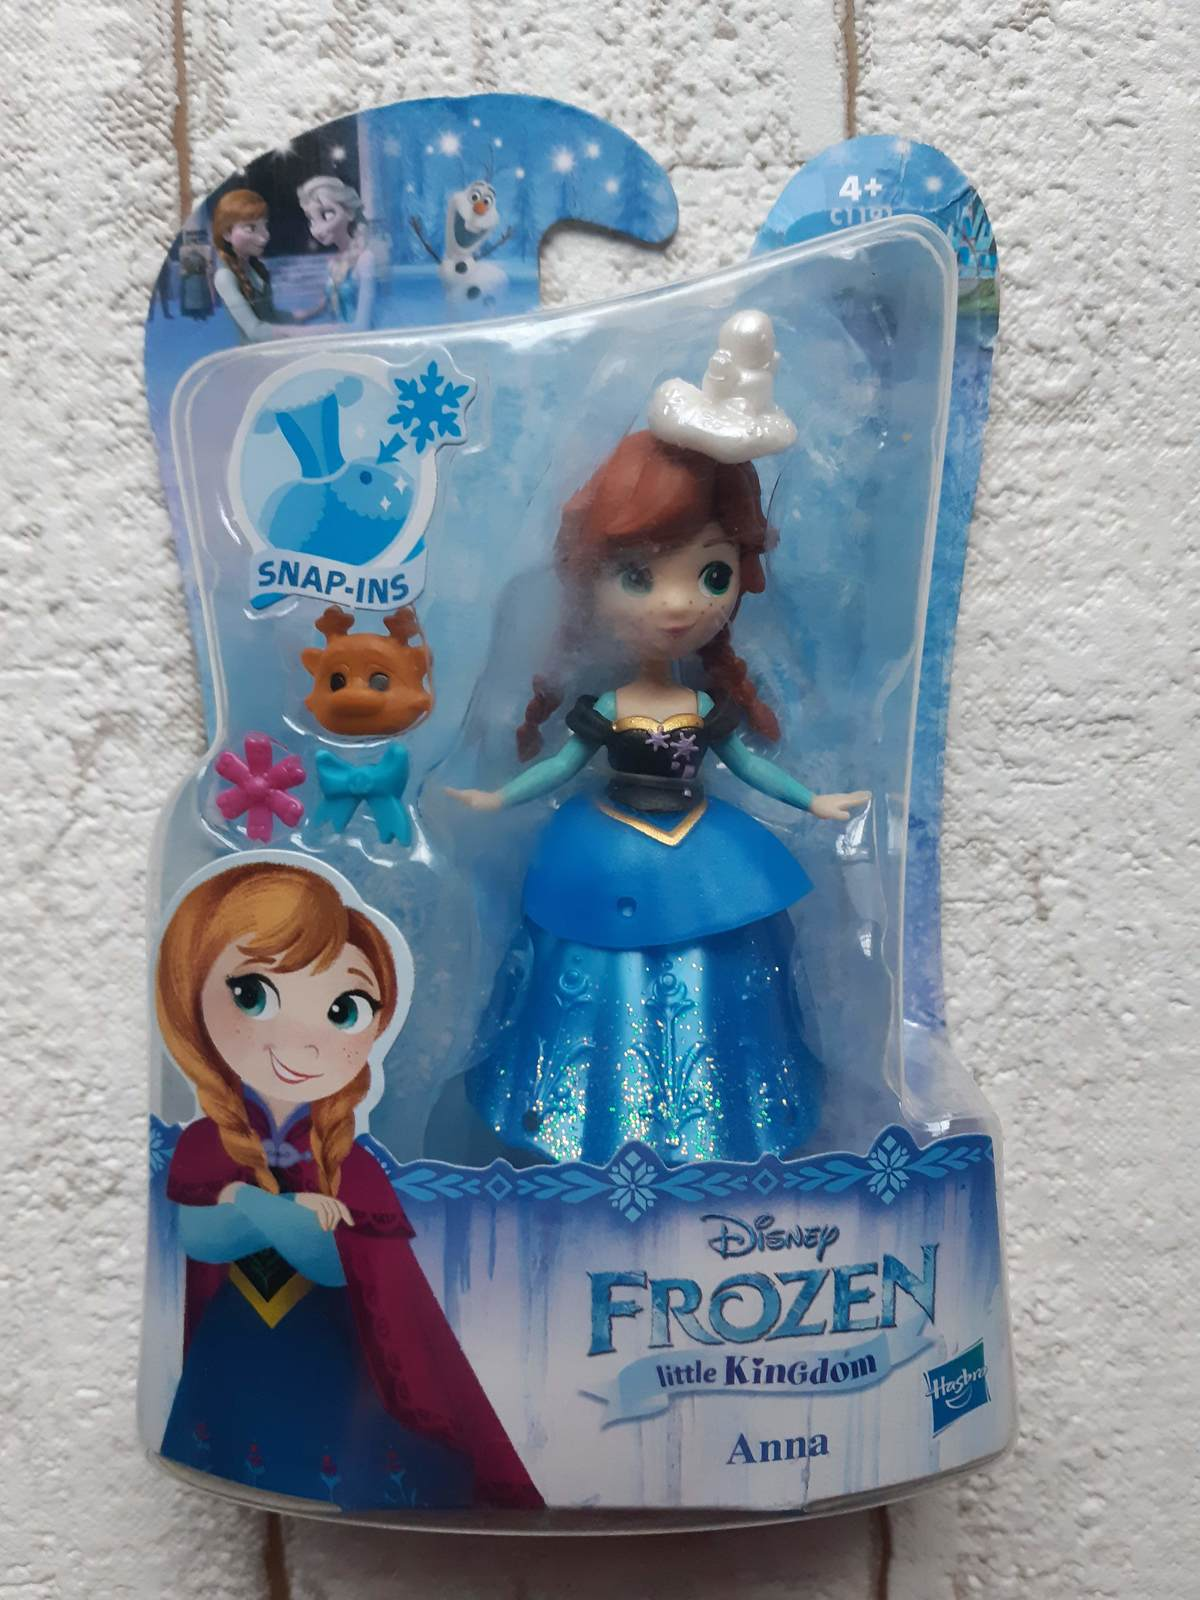 Primary image for Disney Frozen Little Kingdom Anna Doll snap-ins Hasbro C1191